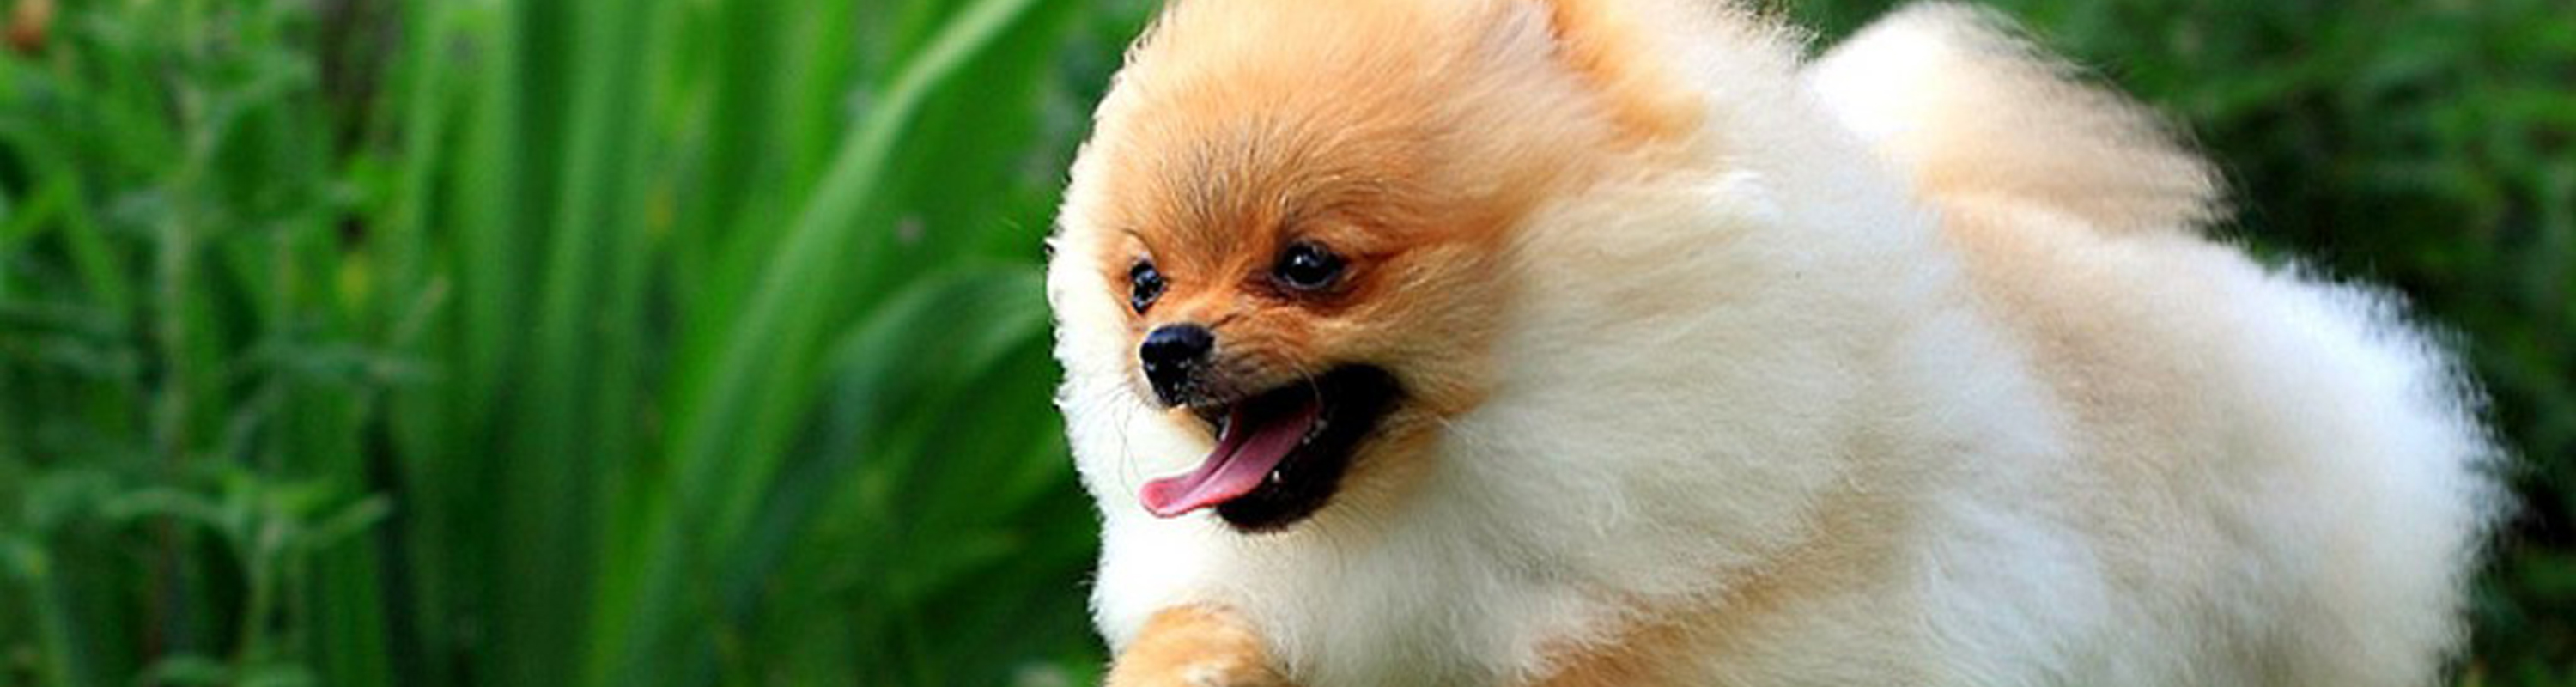 Running pomeranian dog